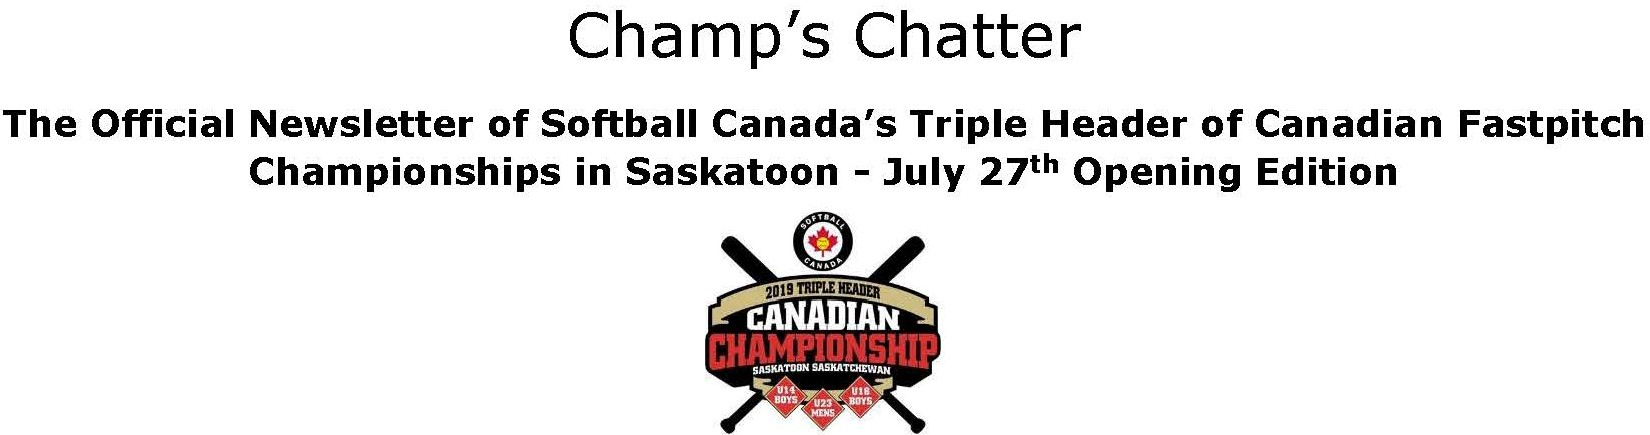 Champ's Chatter  The Official Newsletter of Softball Canada's Triple Header of Canadian Fastpitch Championships in Saskatoon